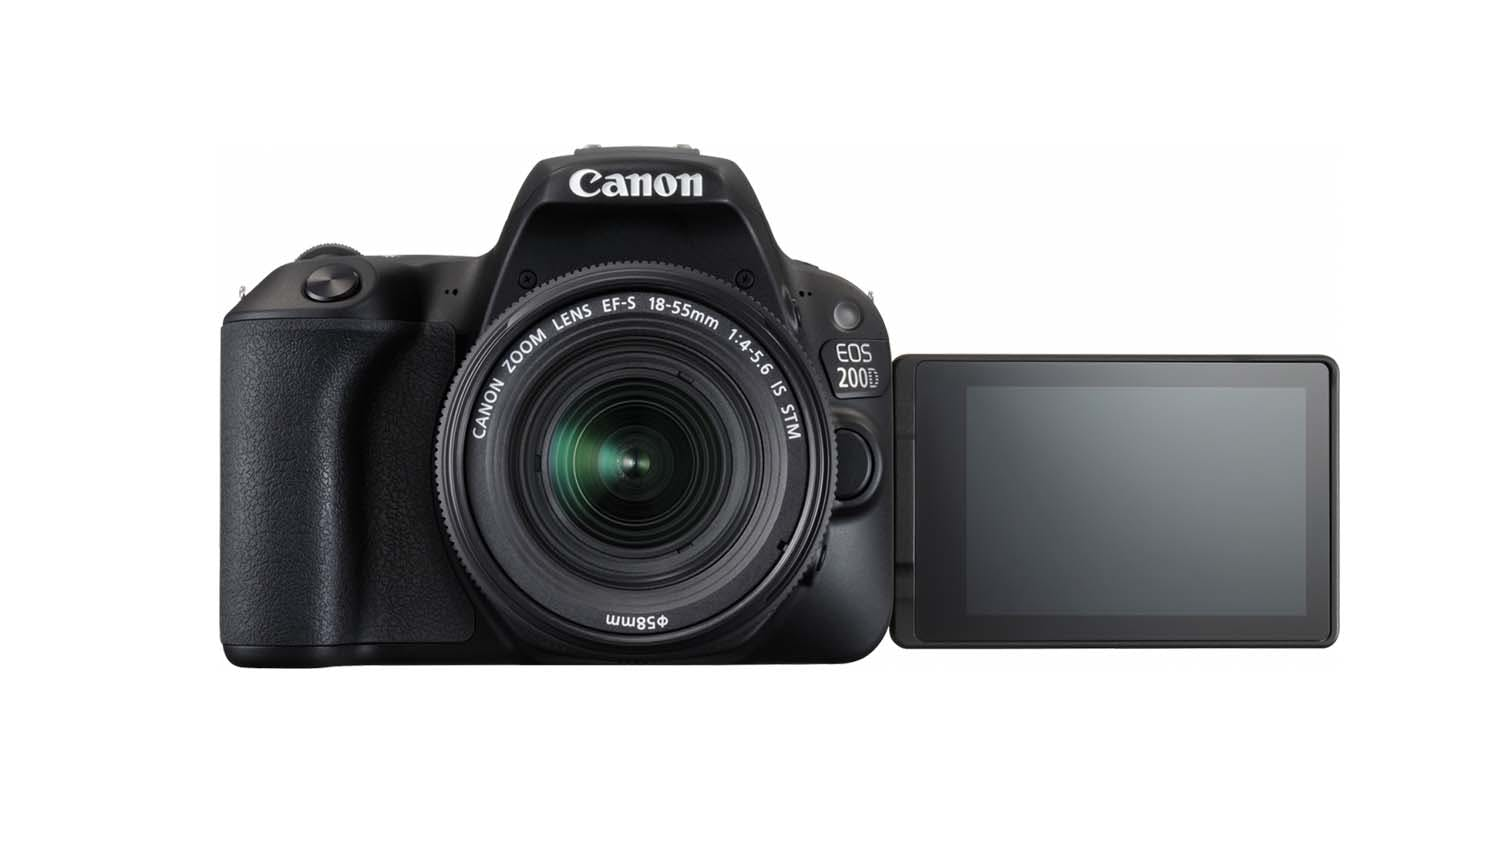 Canon Eos 200d With Efs 18 55mm F 4 56 Is Stm Lens Harvey Norman 700d Kit 135mm 35 Wishlist Compare